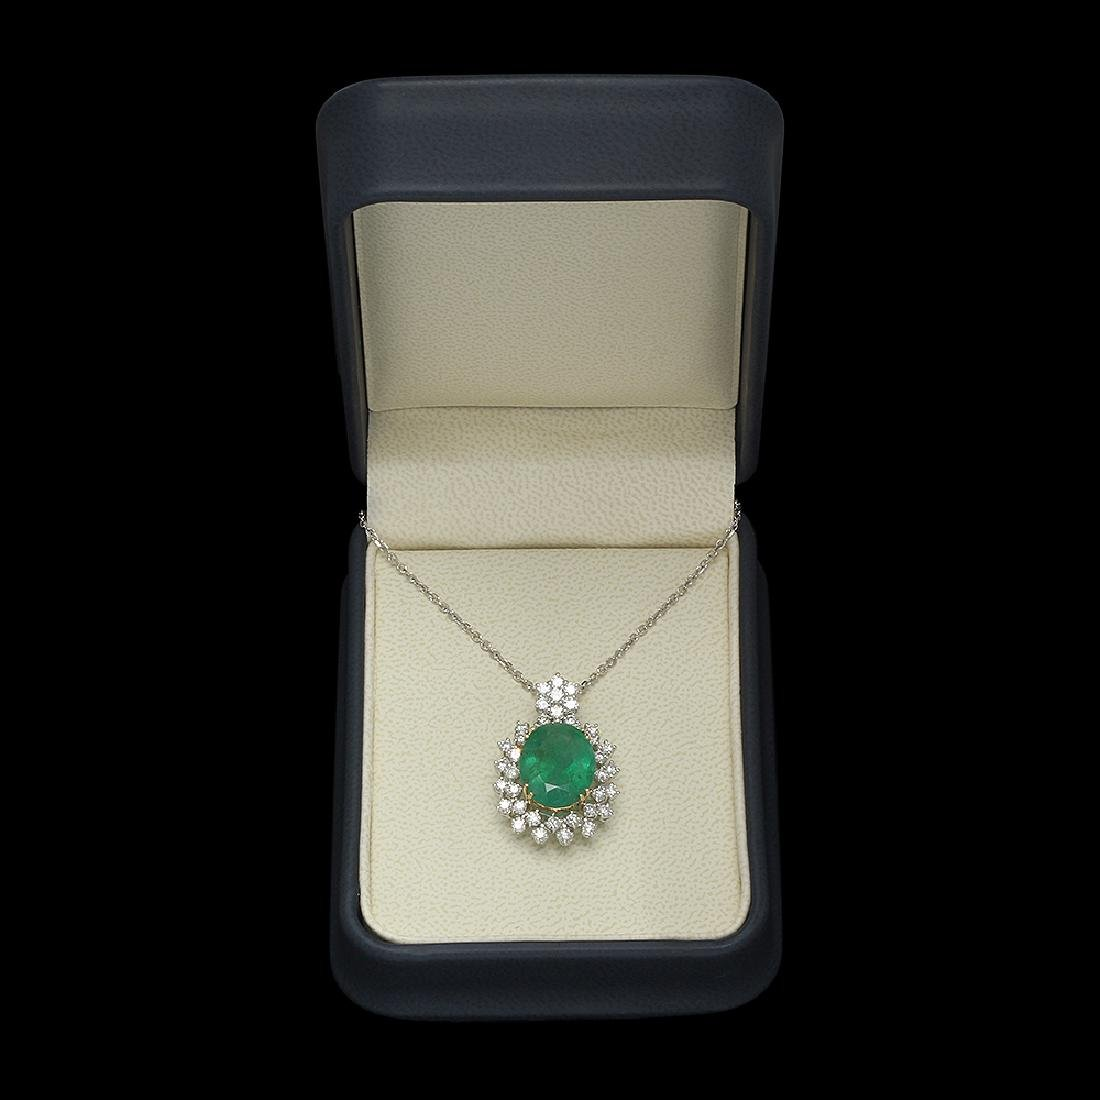 14K Gold 7.50ct Emerald 1.70ct Diamond Pendant - 3